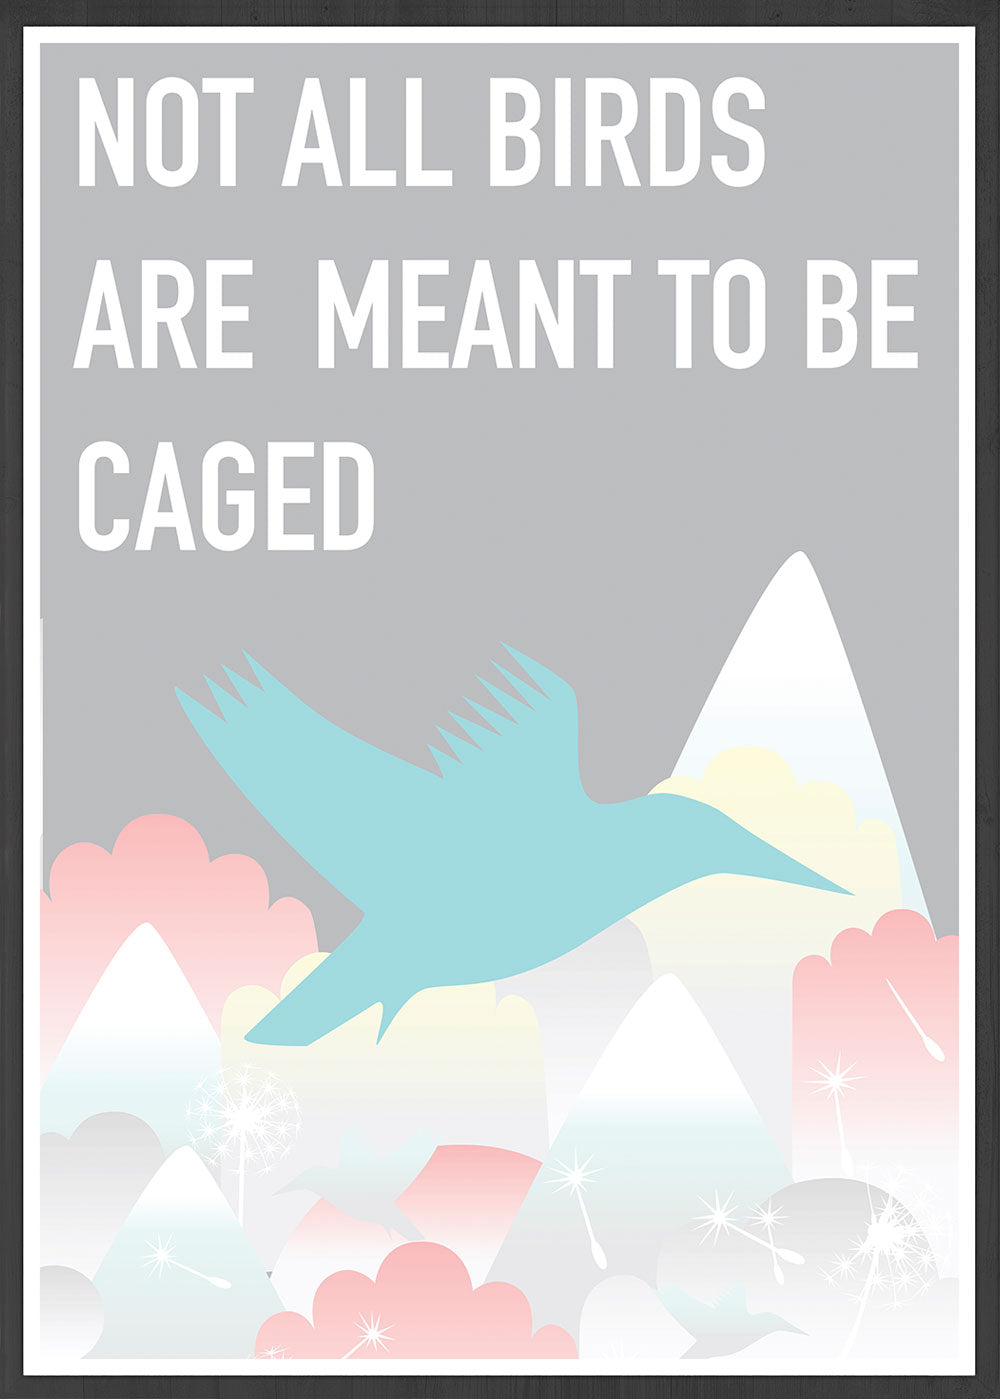 Caged Bird Art Print in a frame